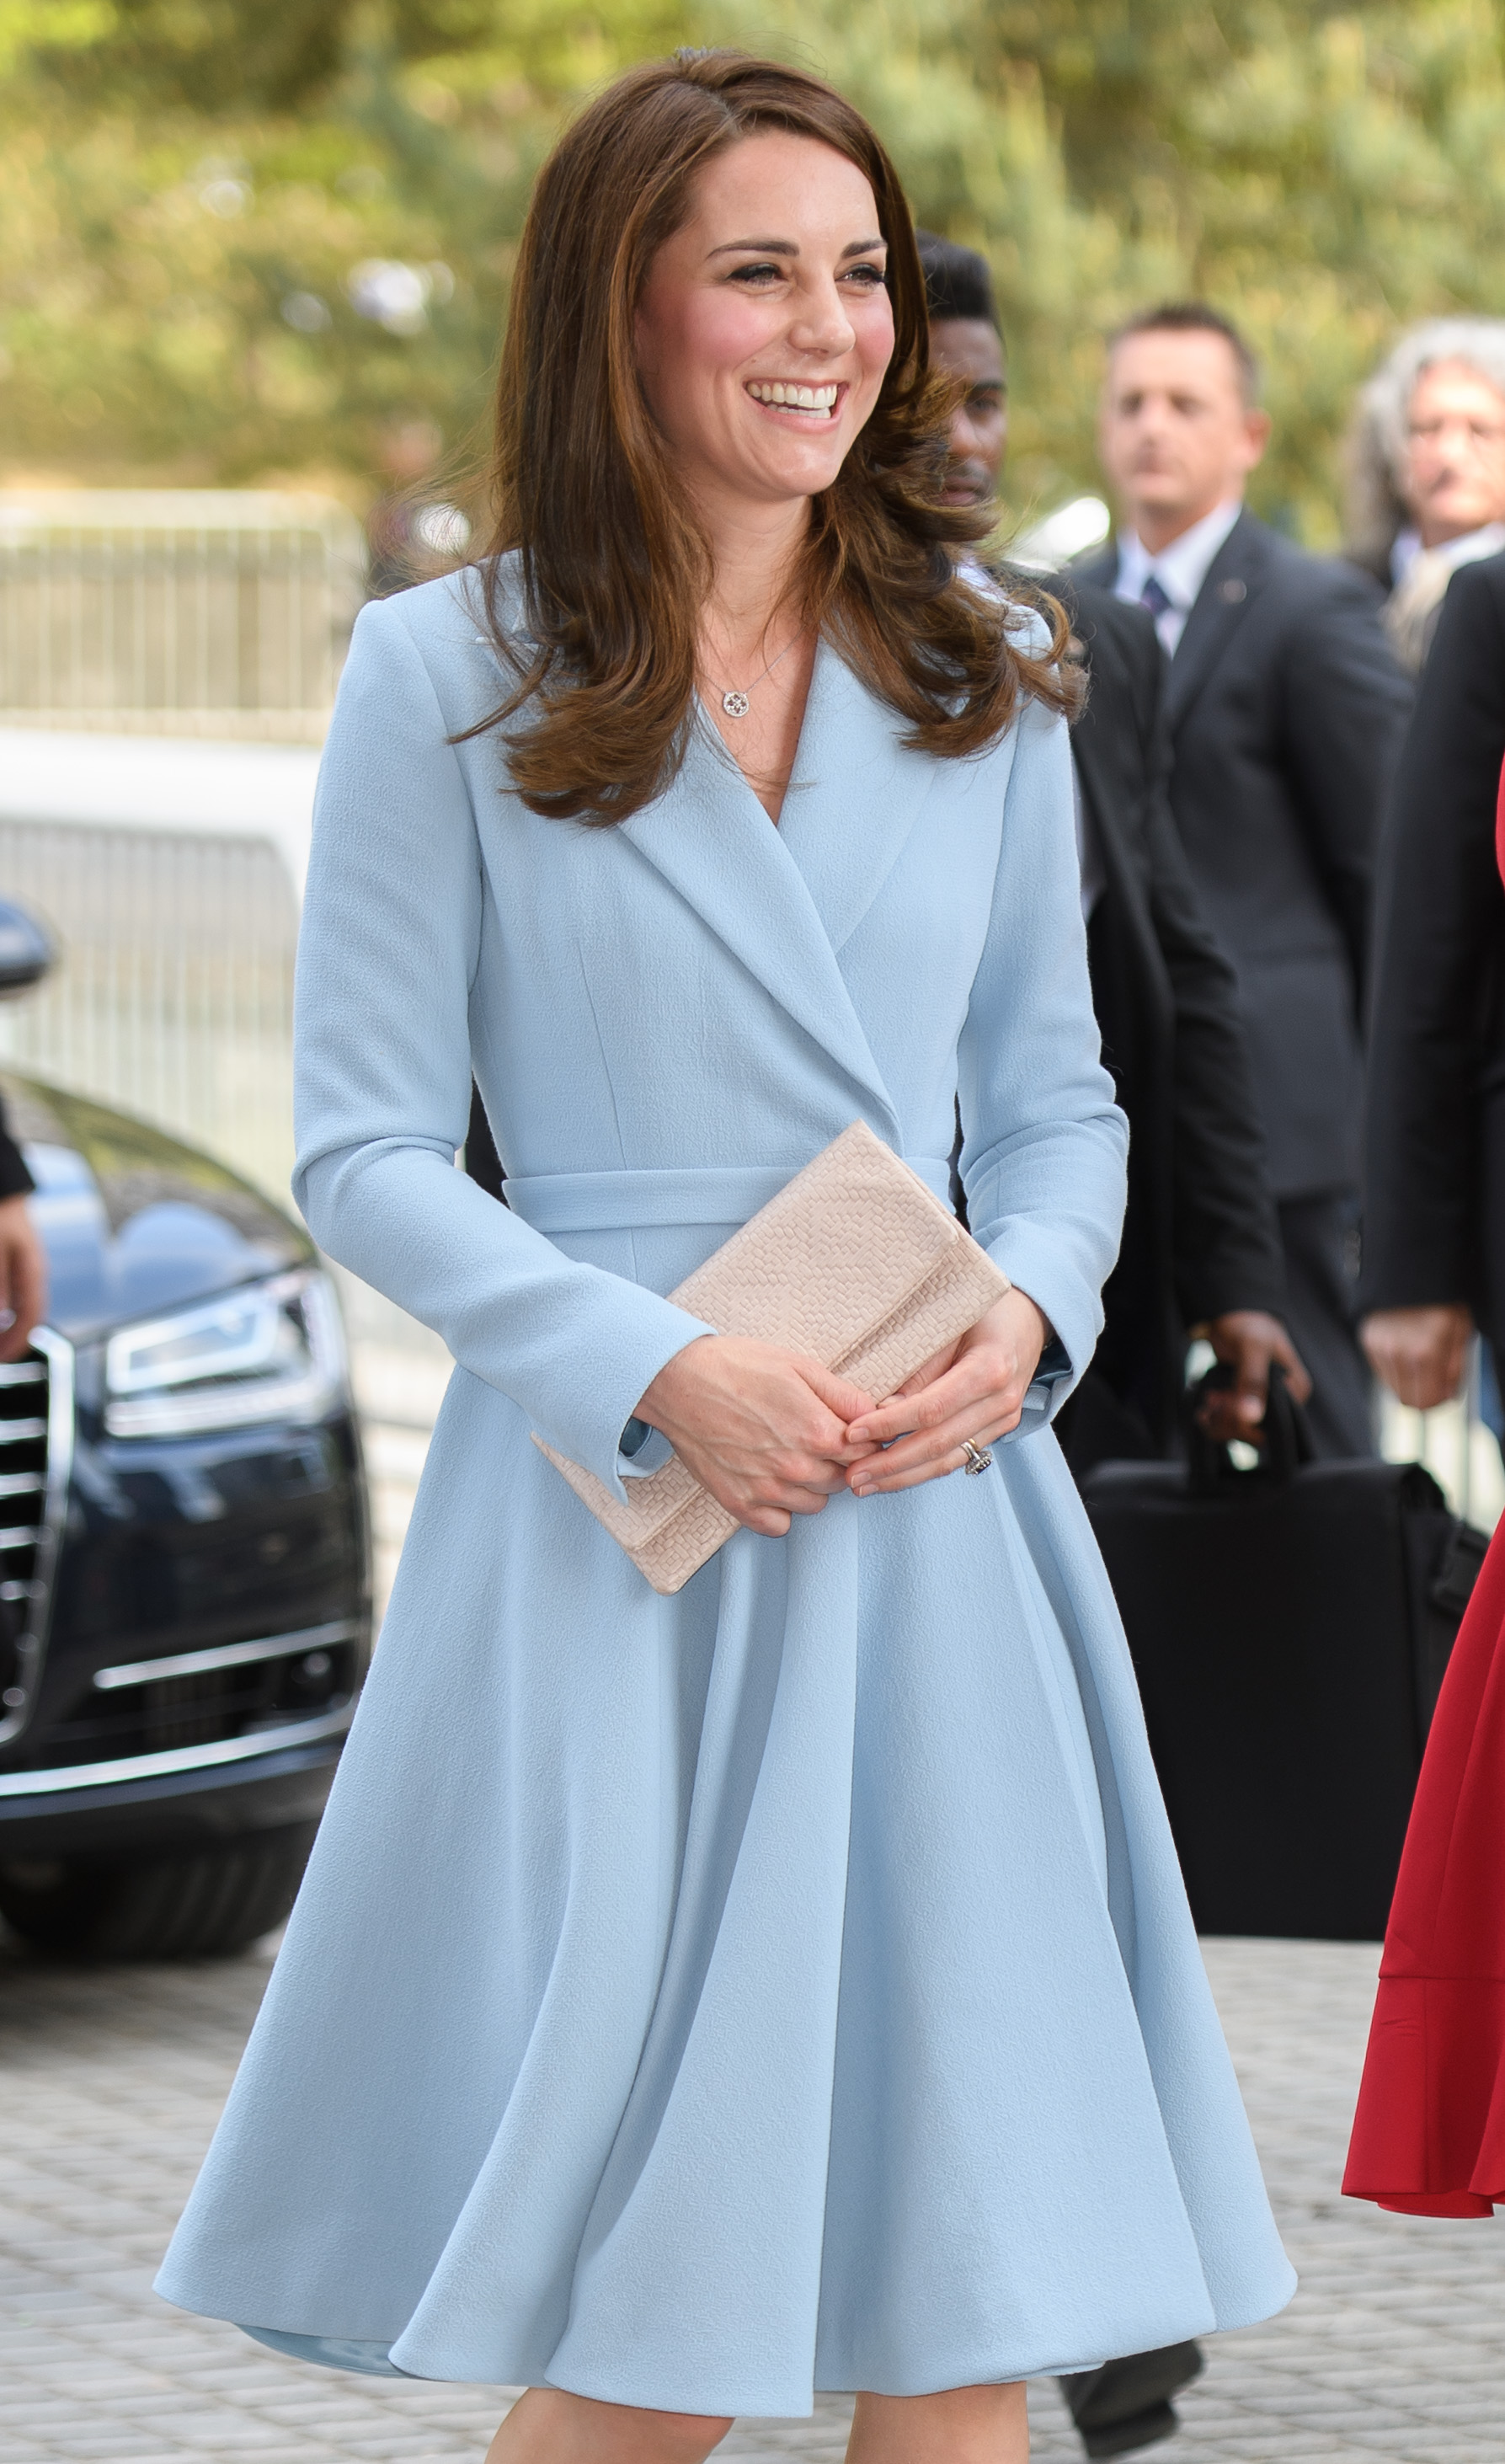 The Duchess of Cambridge in Emilia Wickstead